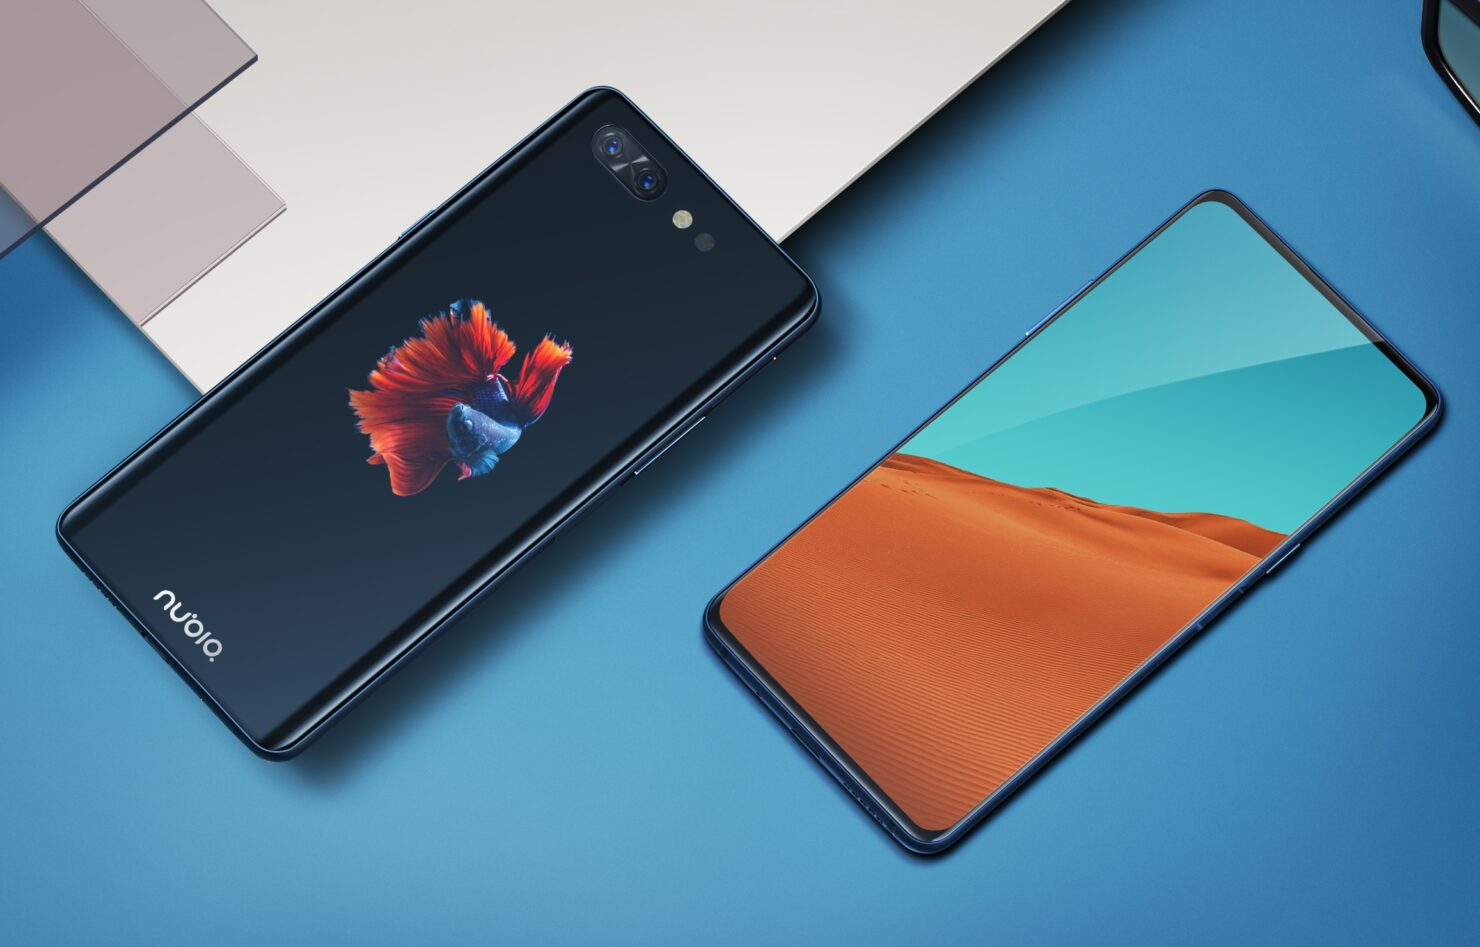 Nubia X rear screen with cameras to increase front screen to body ratio